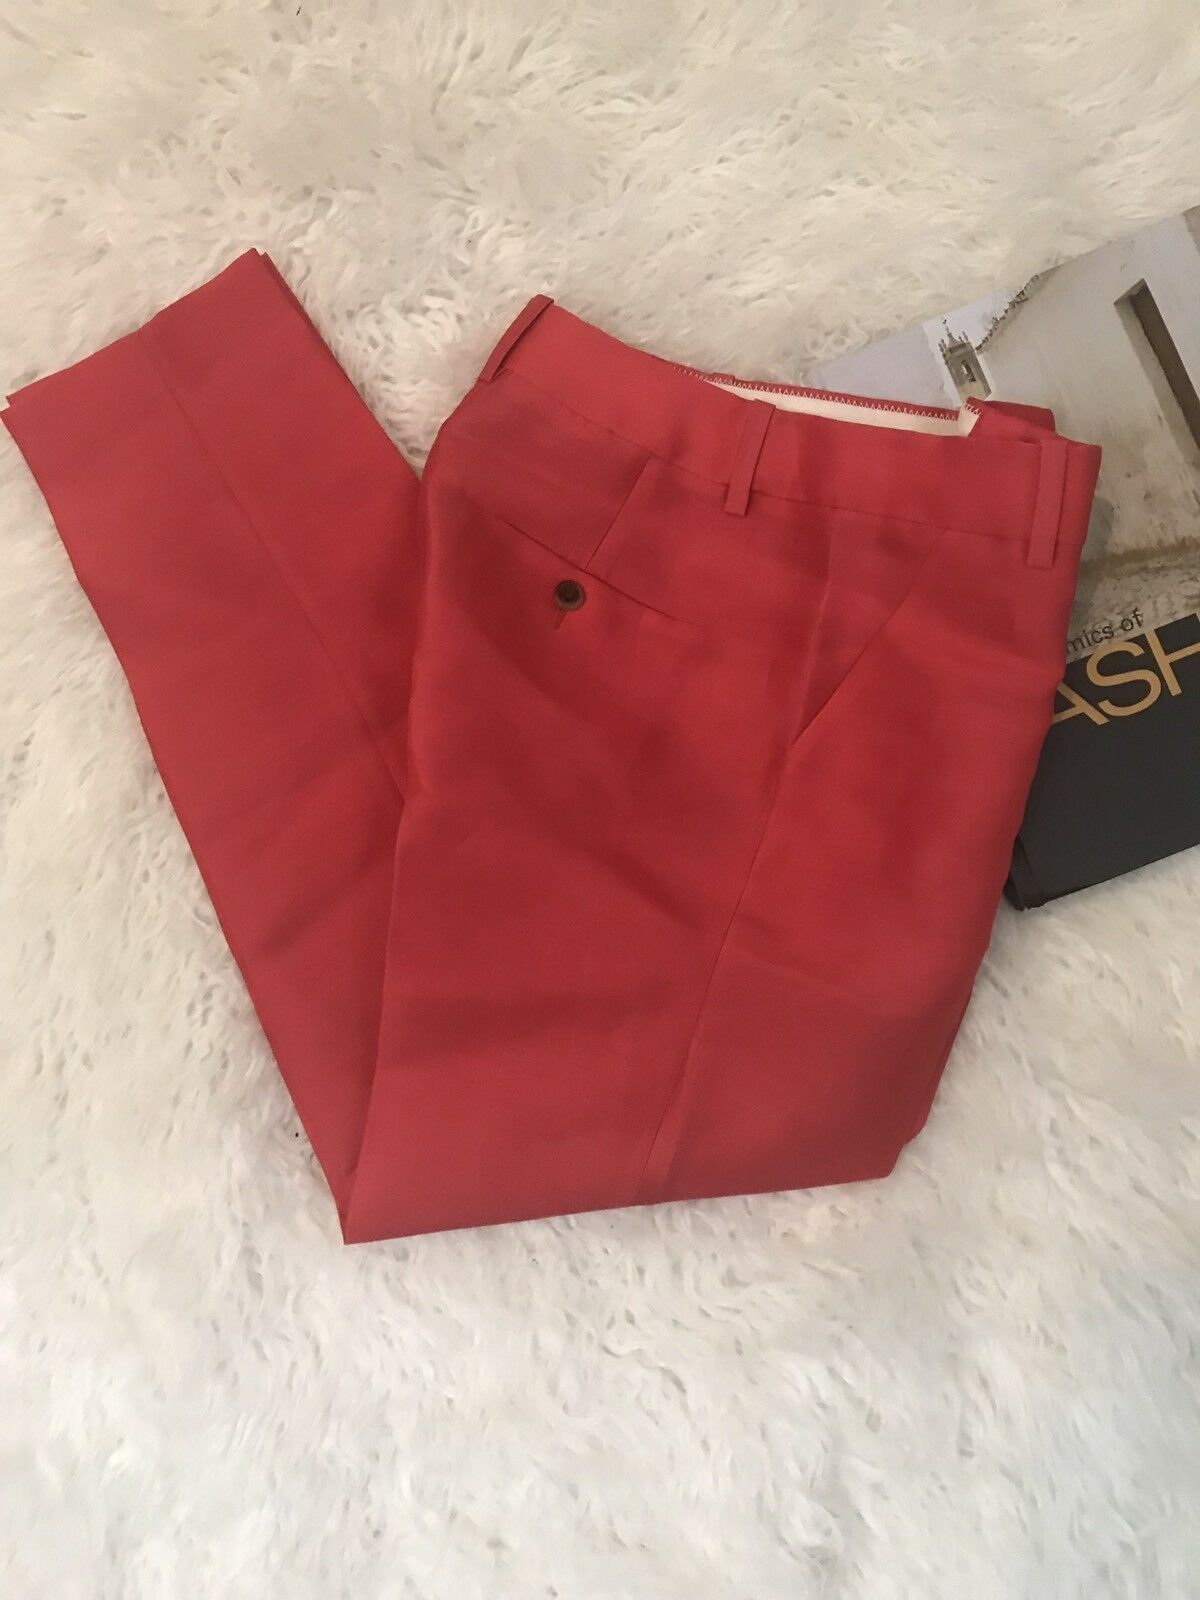 J. CREW Collection Red Silk Wool Blend Original Fit Trouser - Sz 00 NWT